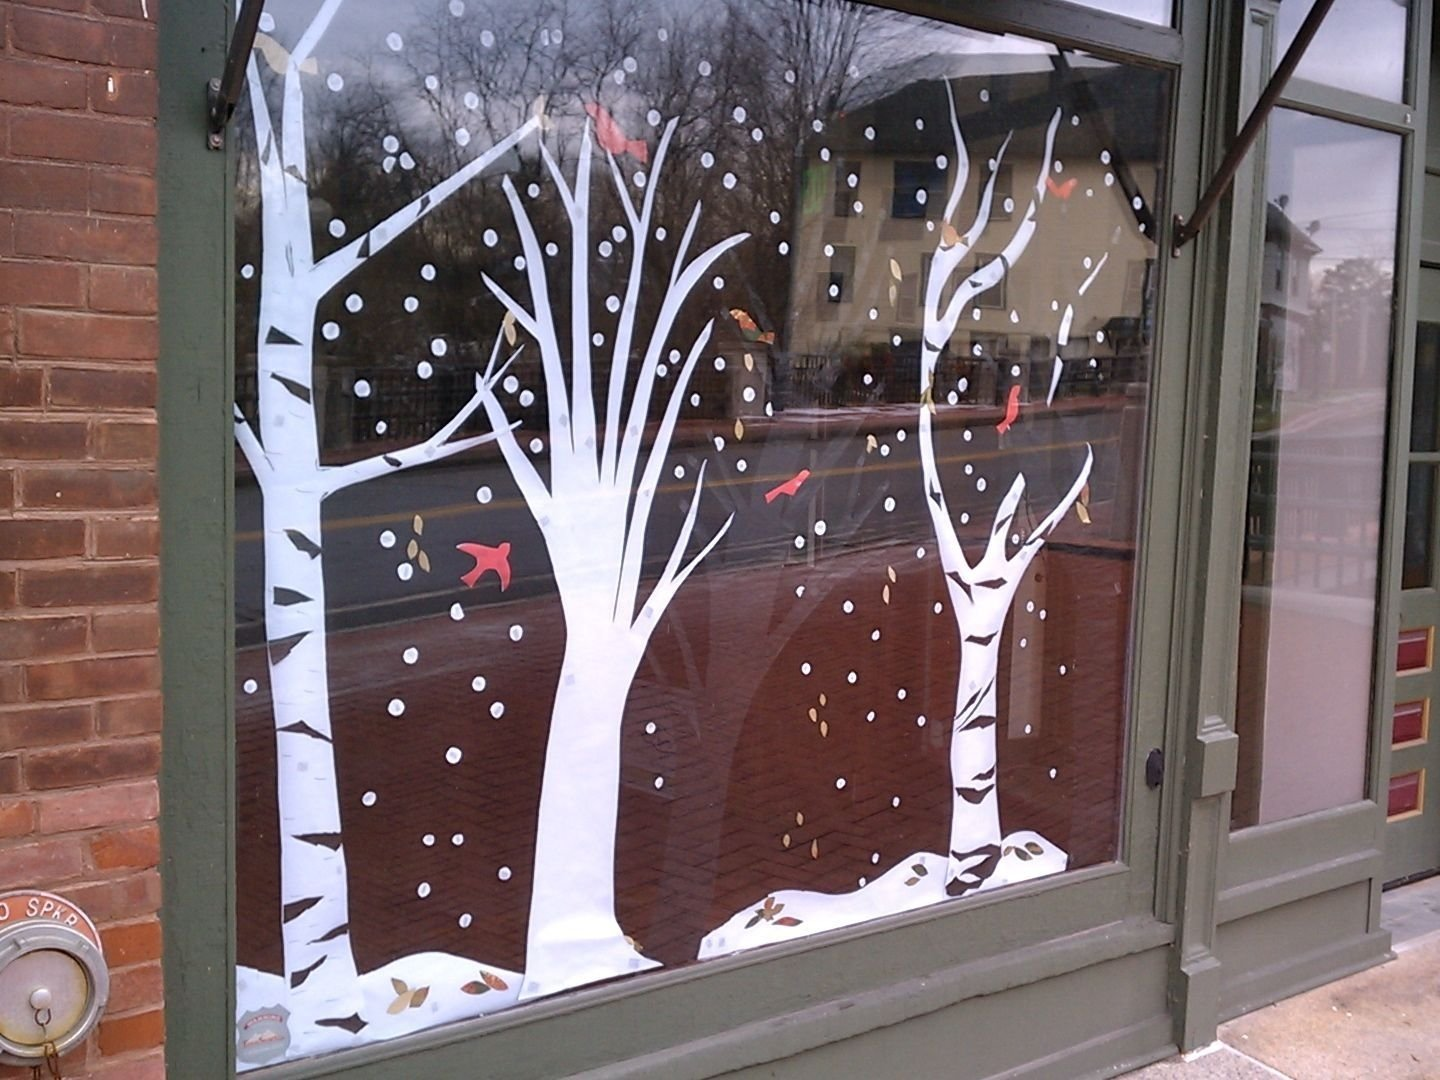 10 Fabulous Christmas Decorating Ideas For Windows easy ways to improve the empty storefront on your block so it stops 2020